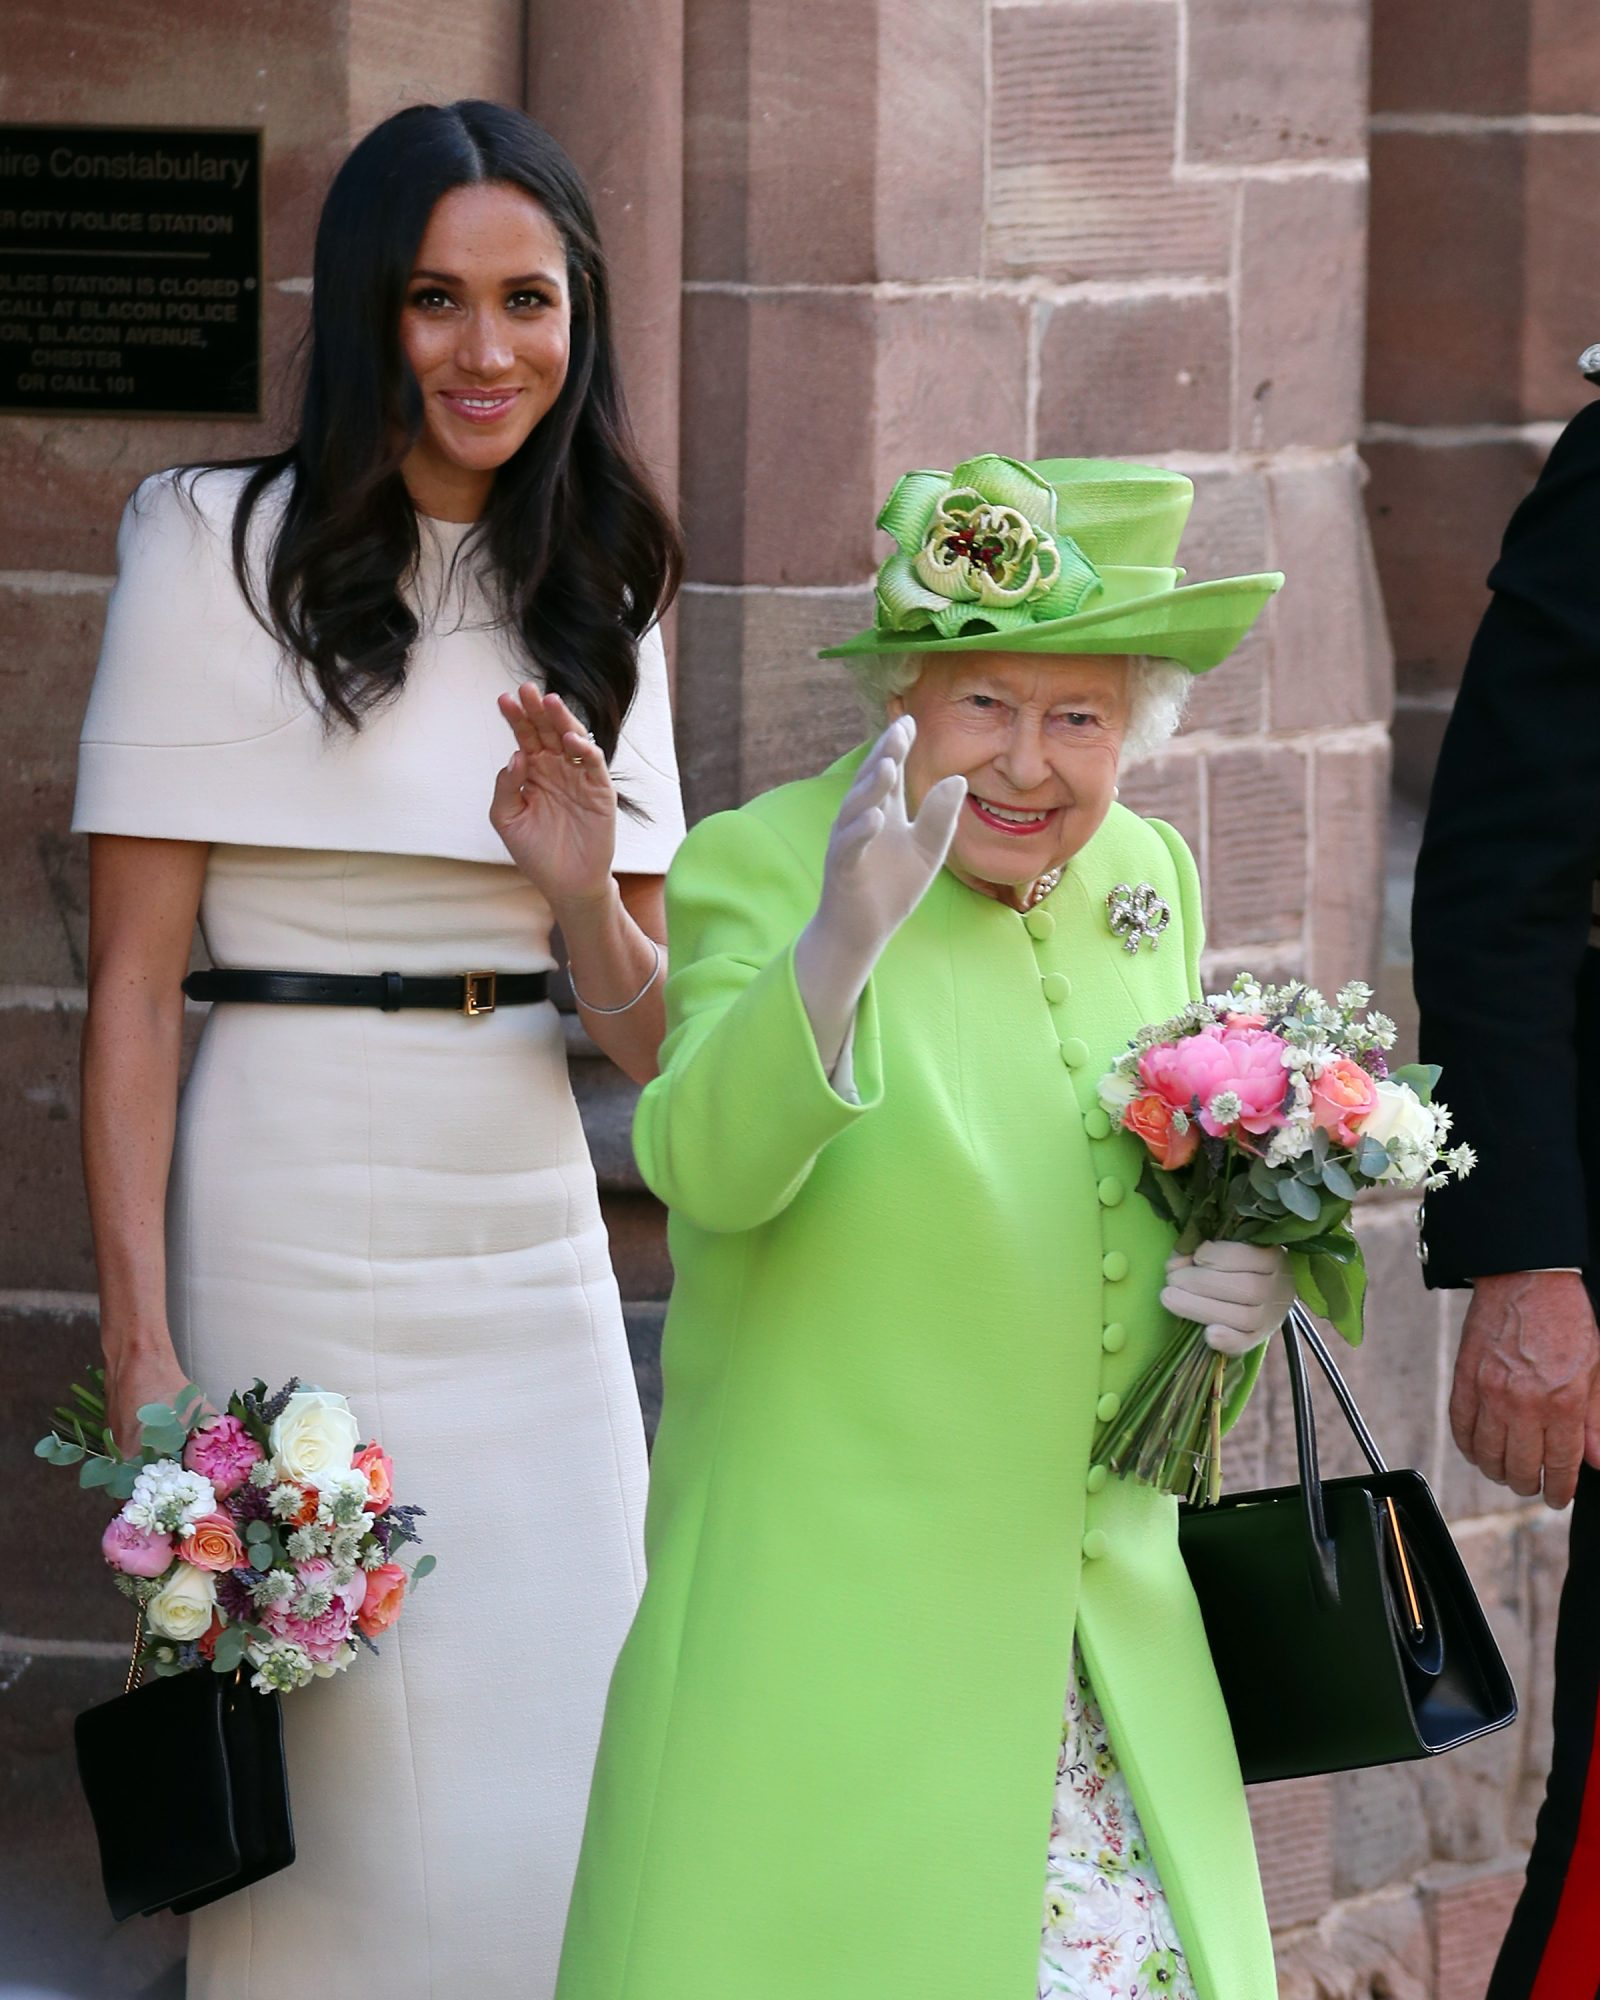 How the Queen Avoided an Awkward Car Moment with Meghan Markle: 'You Go First'